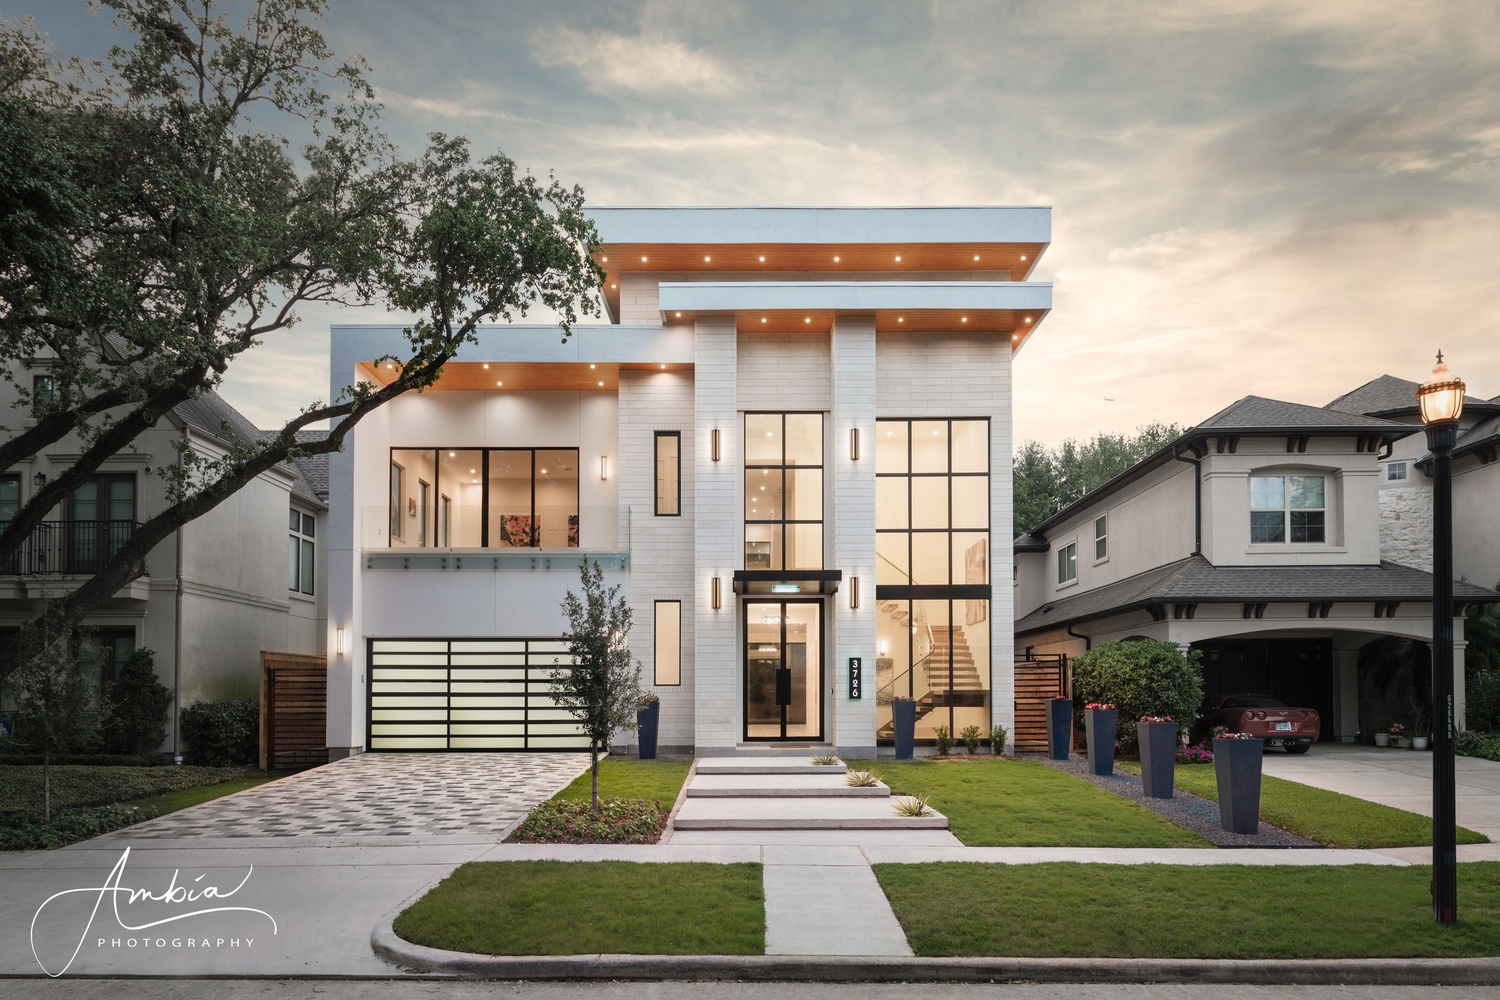 Houston Home Builder by Vladimir Ambia